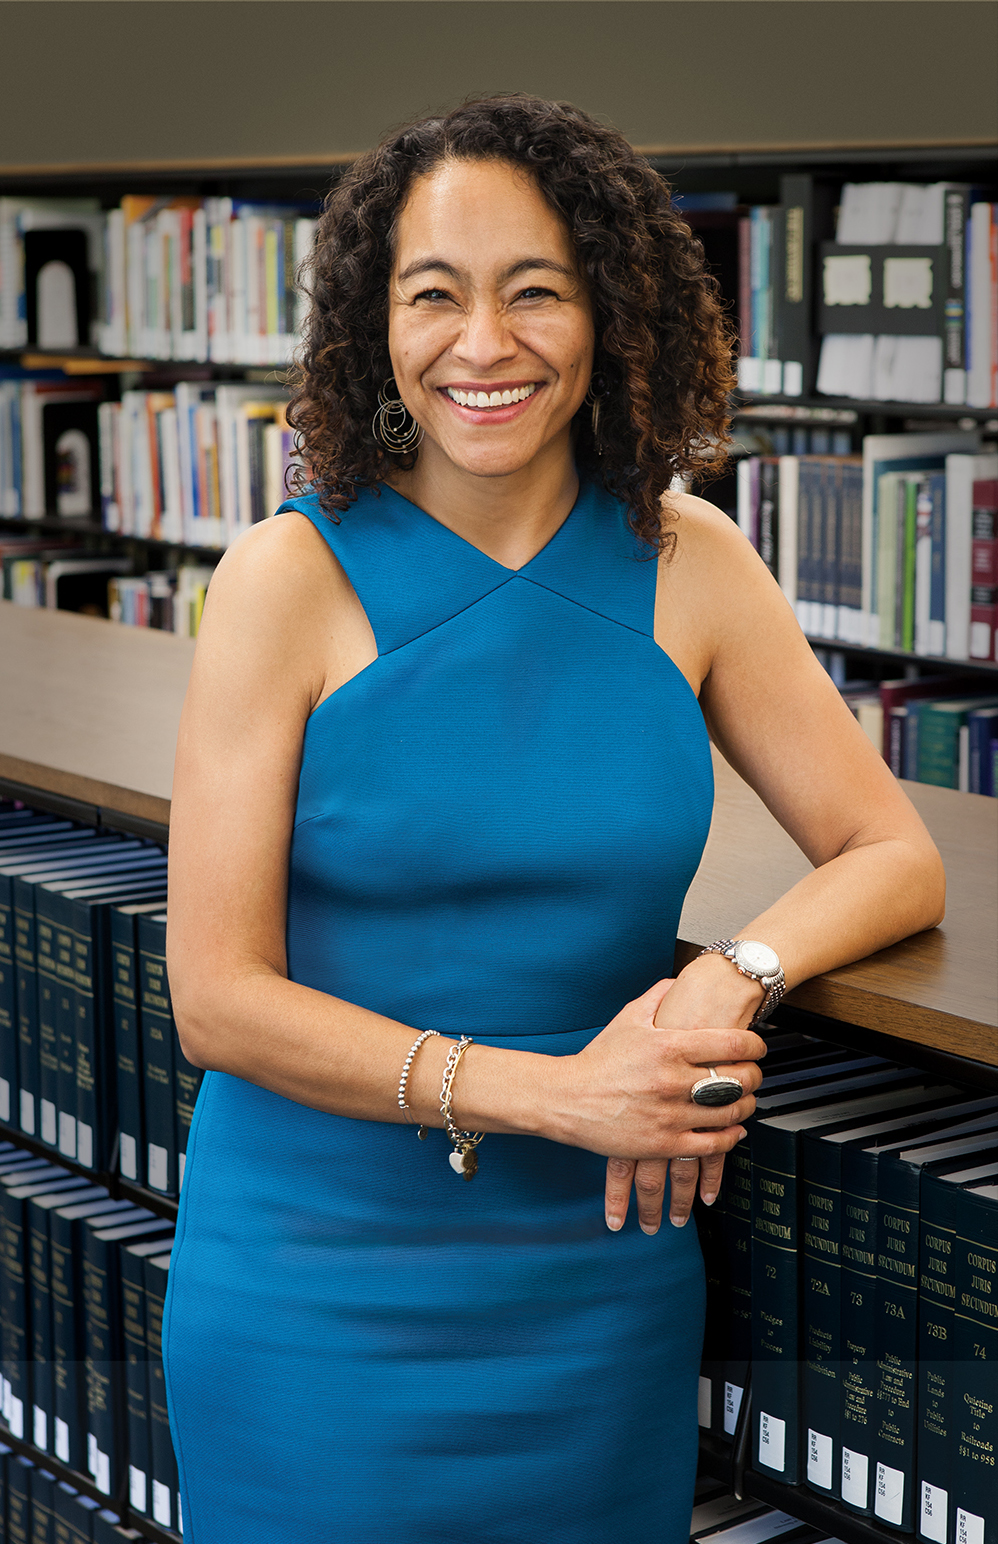 UCI School of Law Names L. Song Richardson As Dean Effective In 2018